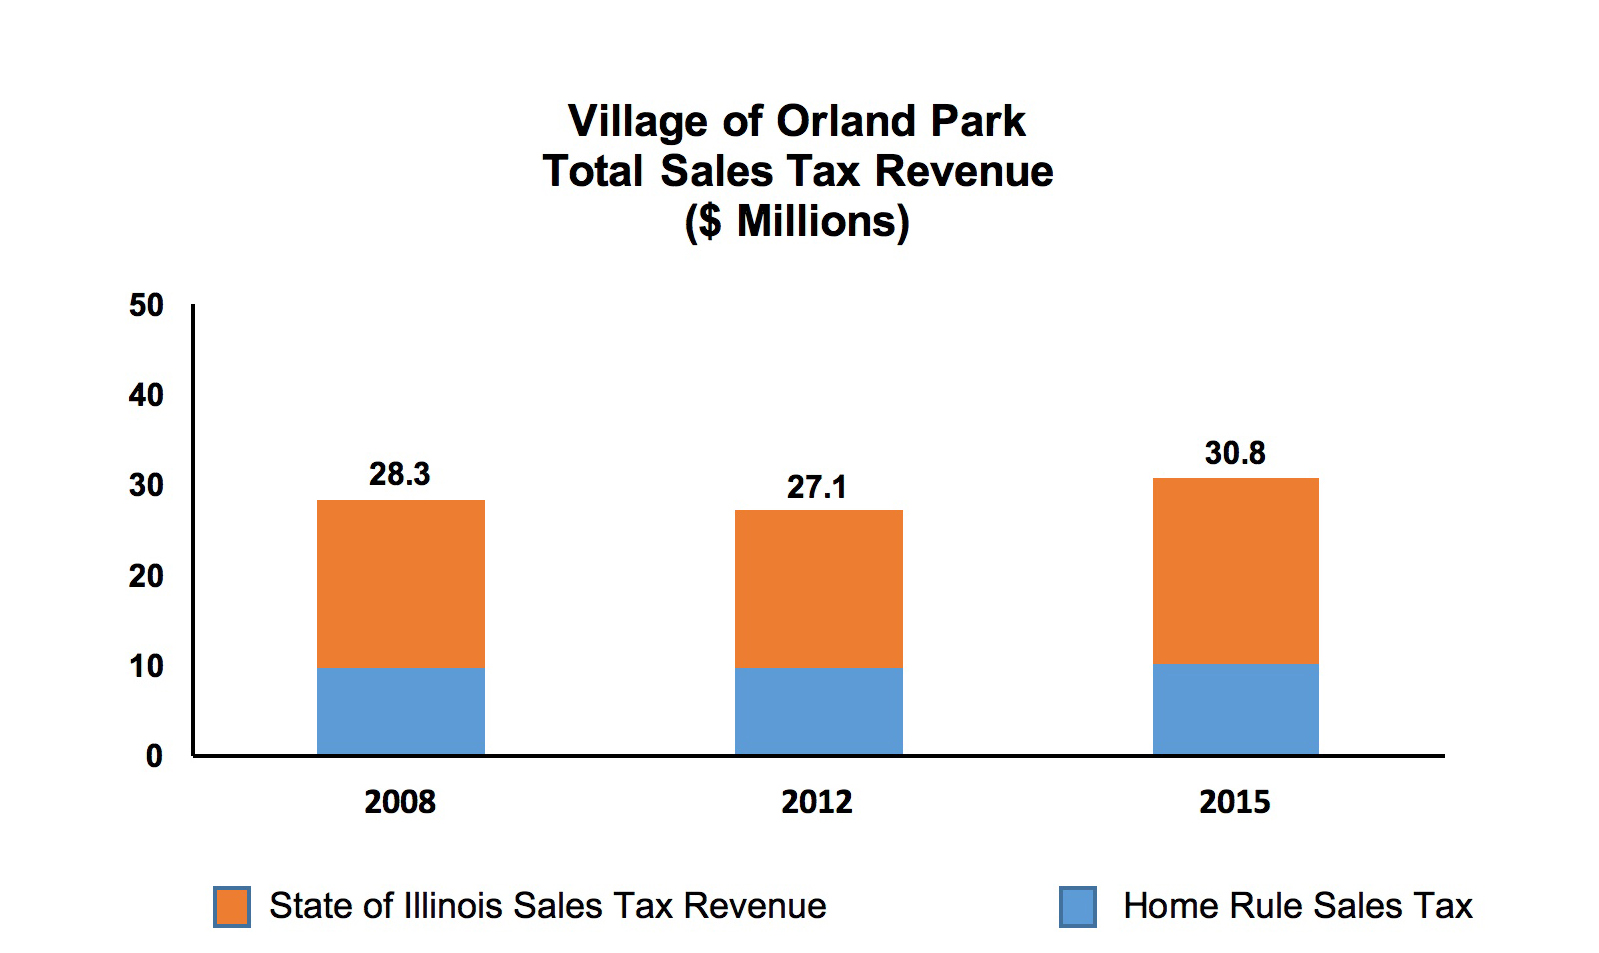 Village of Orland Park Total Sales Tax Revenue